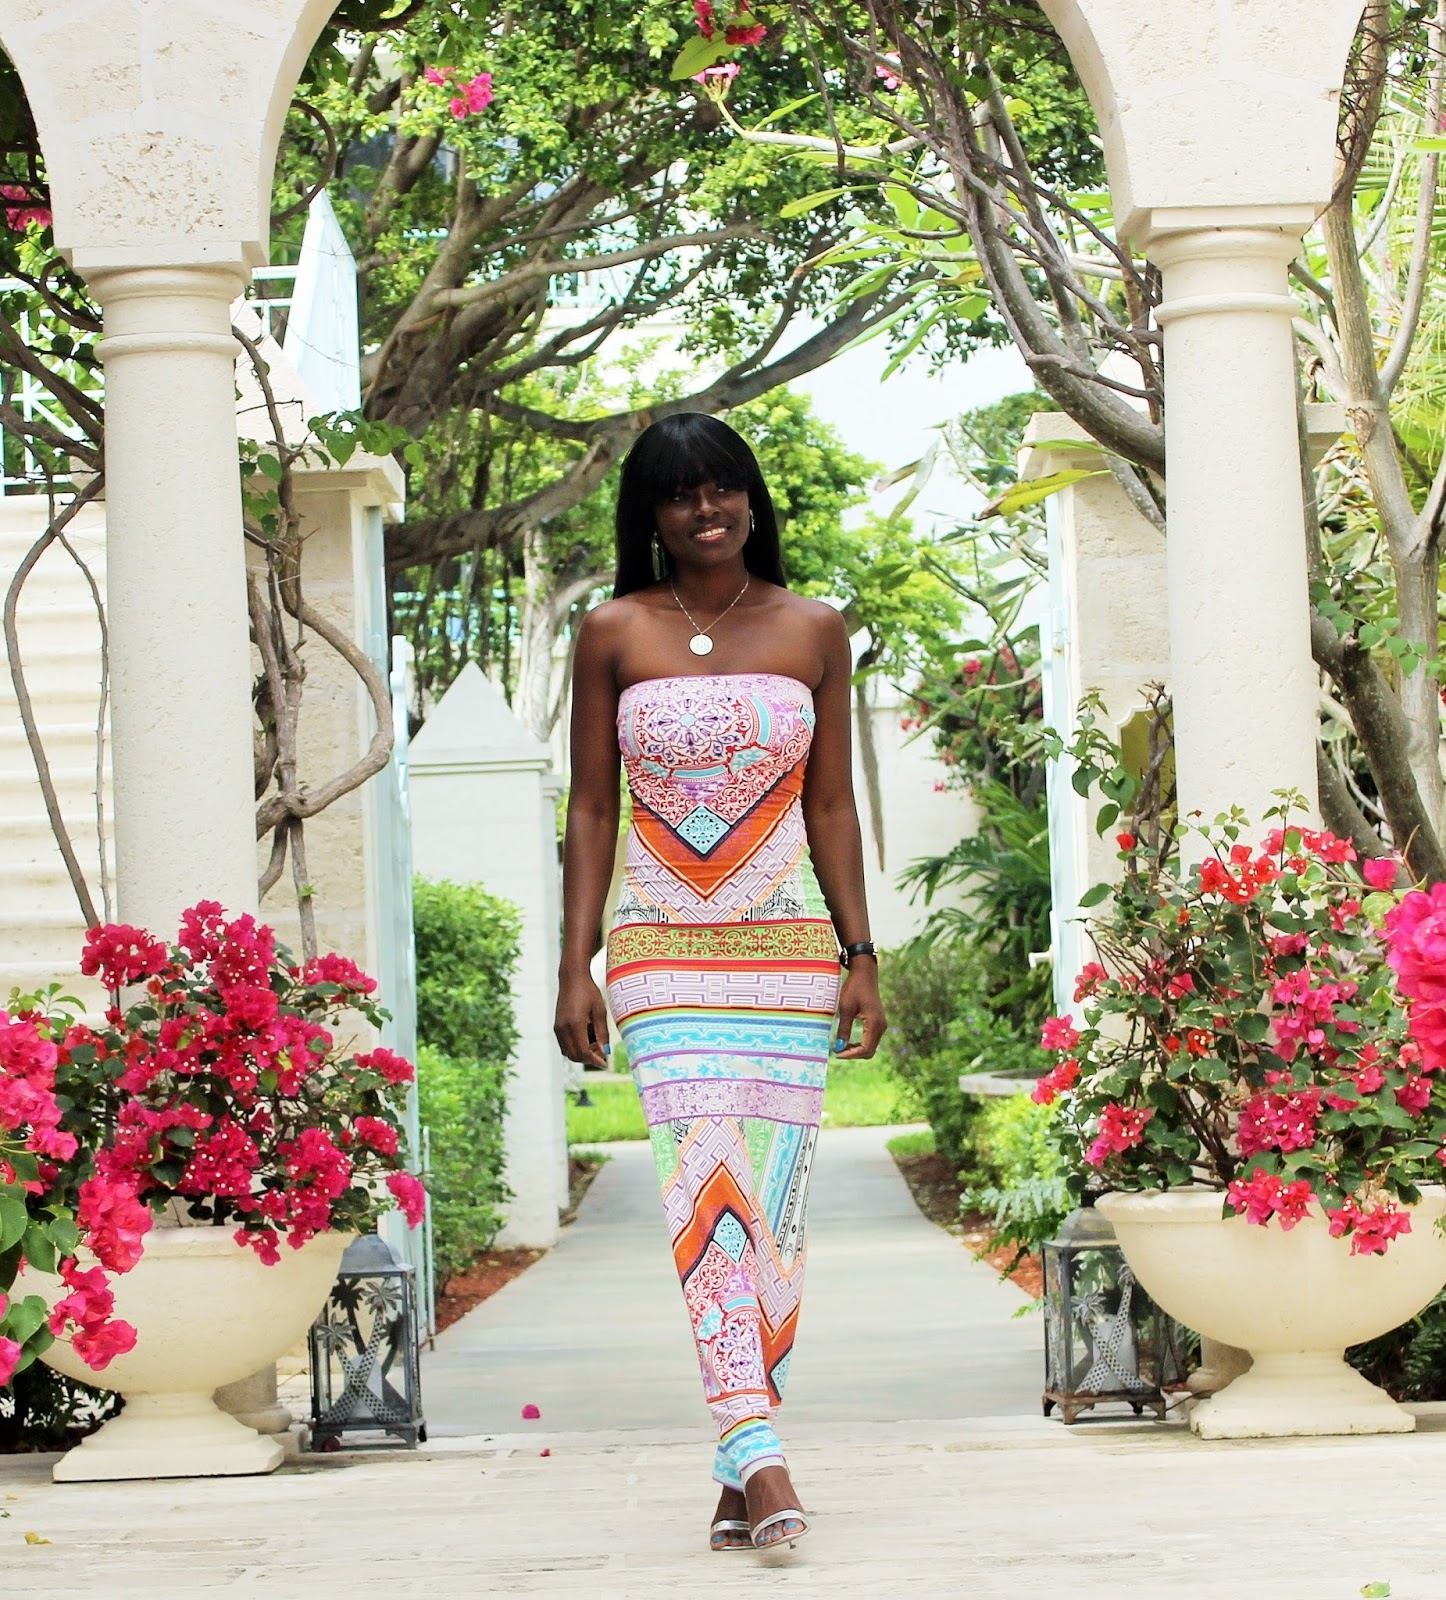 HALE BOB DRESS: PERFECT RESORT WEAR FOR VALENTINE'S DAY, GIRL'S NIGHT OUT AND MORE...